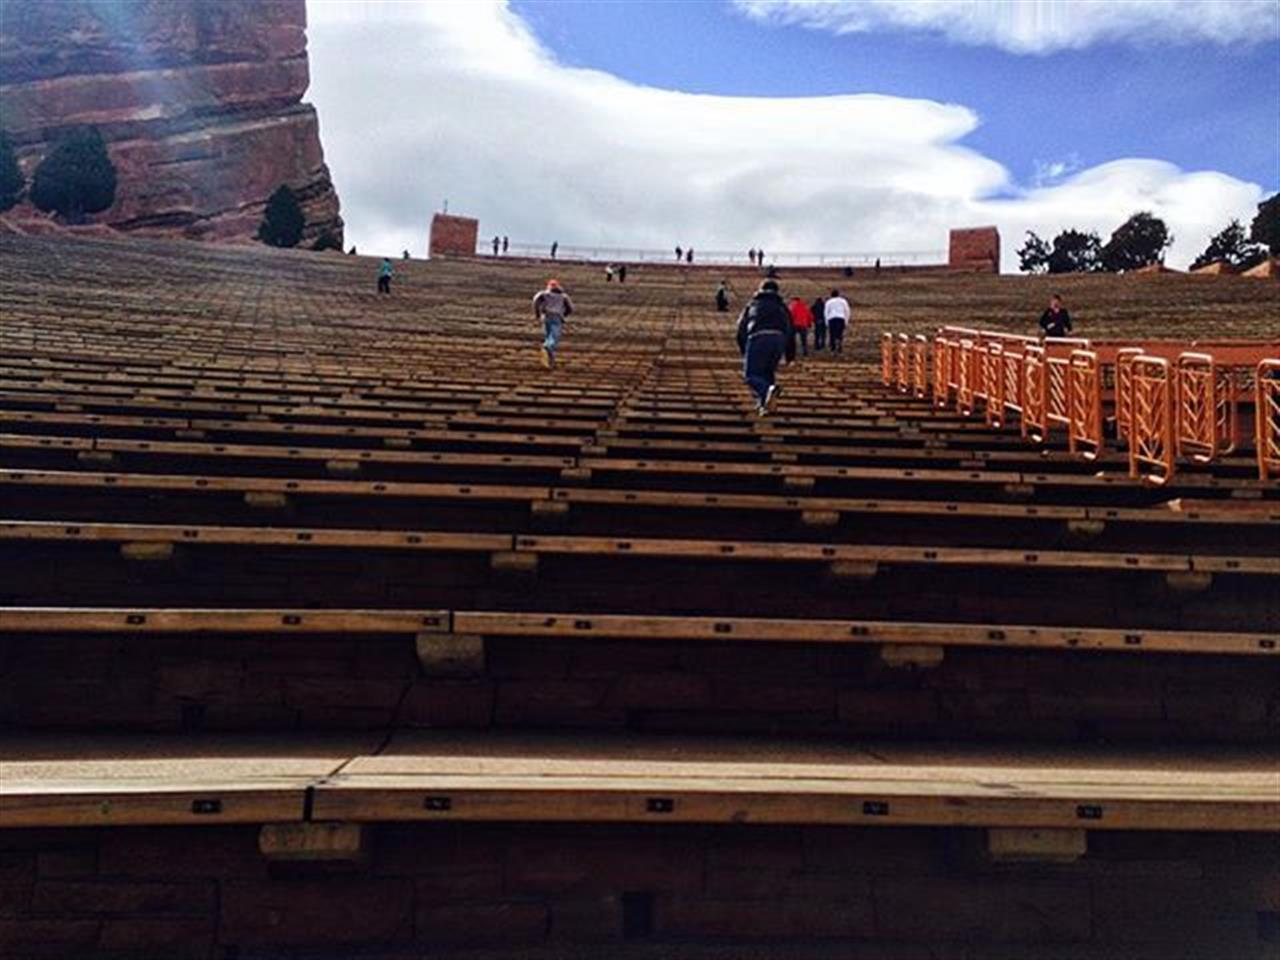 If you caught a cheap flight to Denver, Red Rocks Park is worth the venture. Breathtaking views and fun events all rolled into one. #denver #morrison #chicagodestination #directflights #leadingrelocal #bairdandwarner